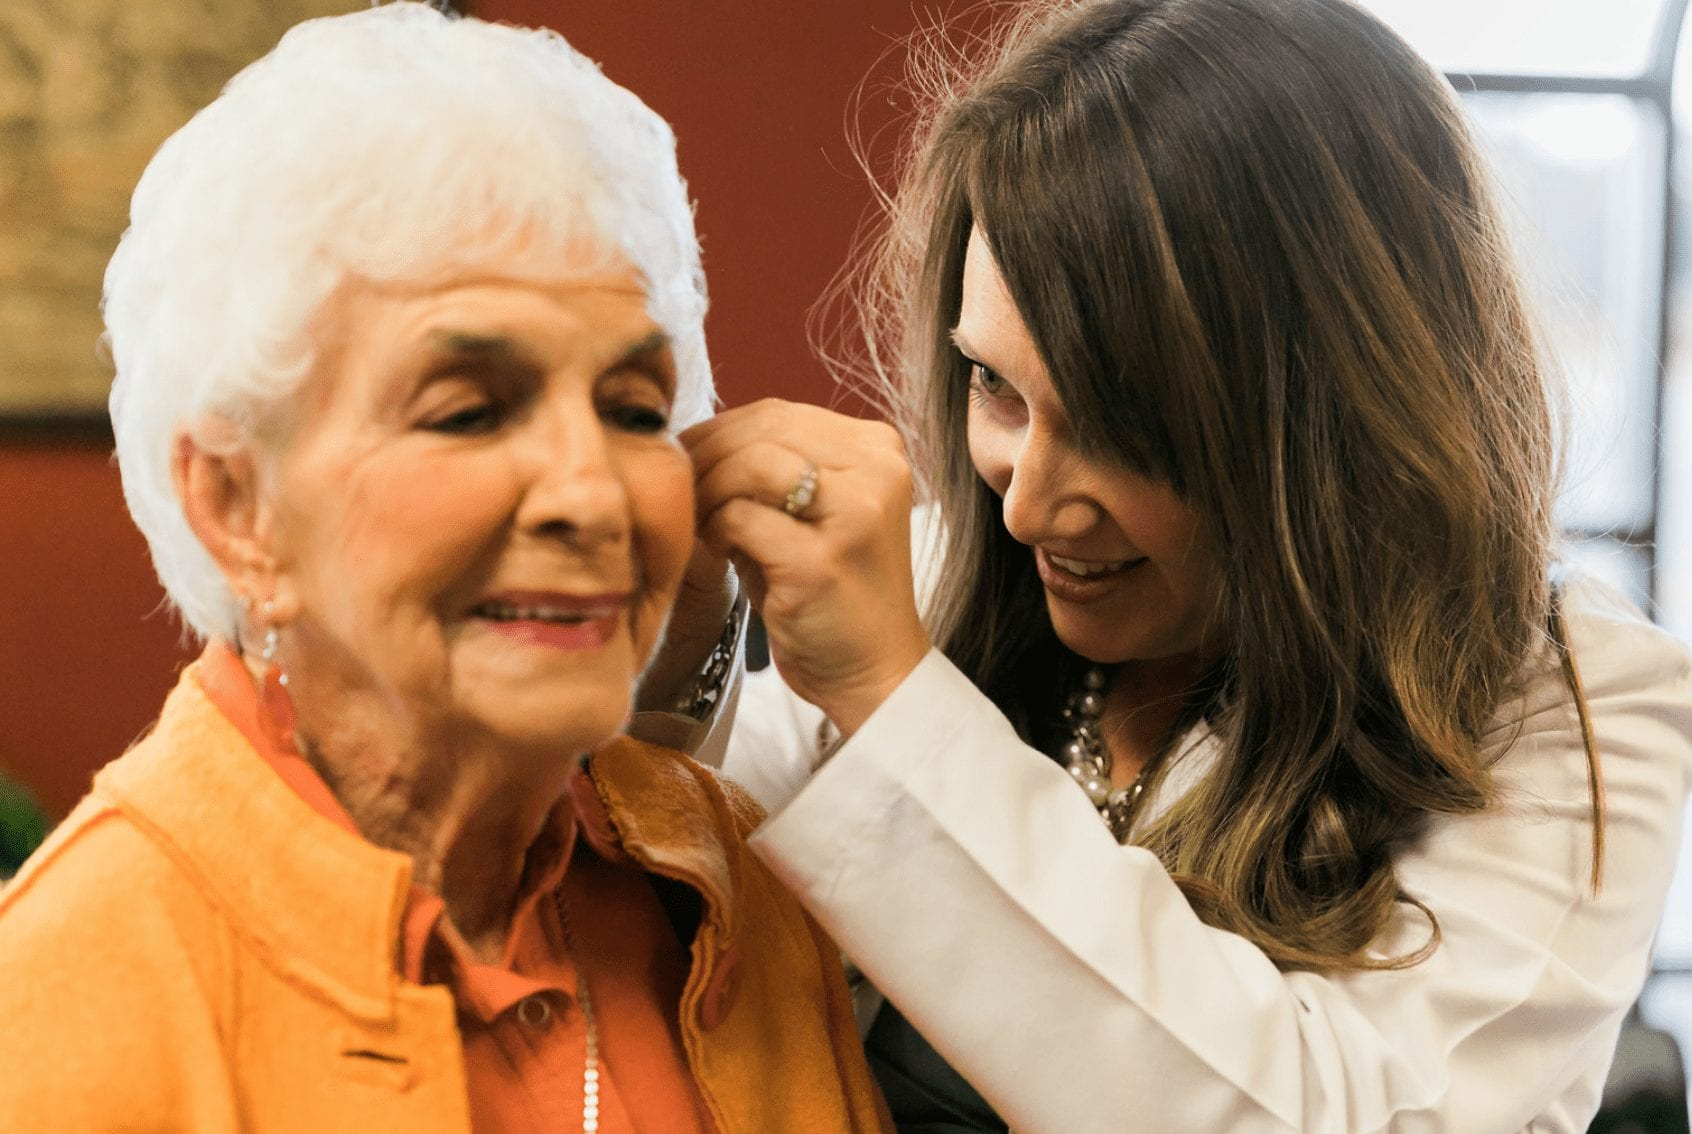 Dr. Julie Hubik adjusting hearing aids on happy elderly patient